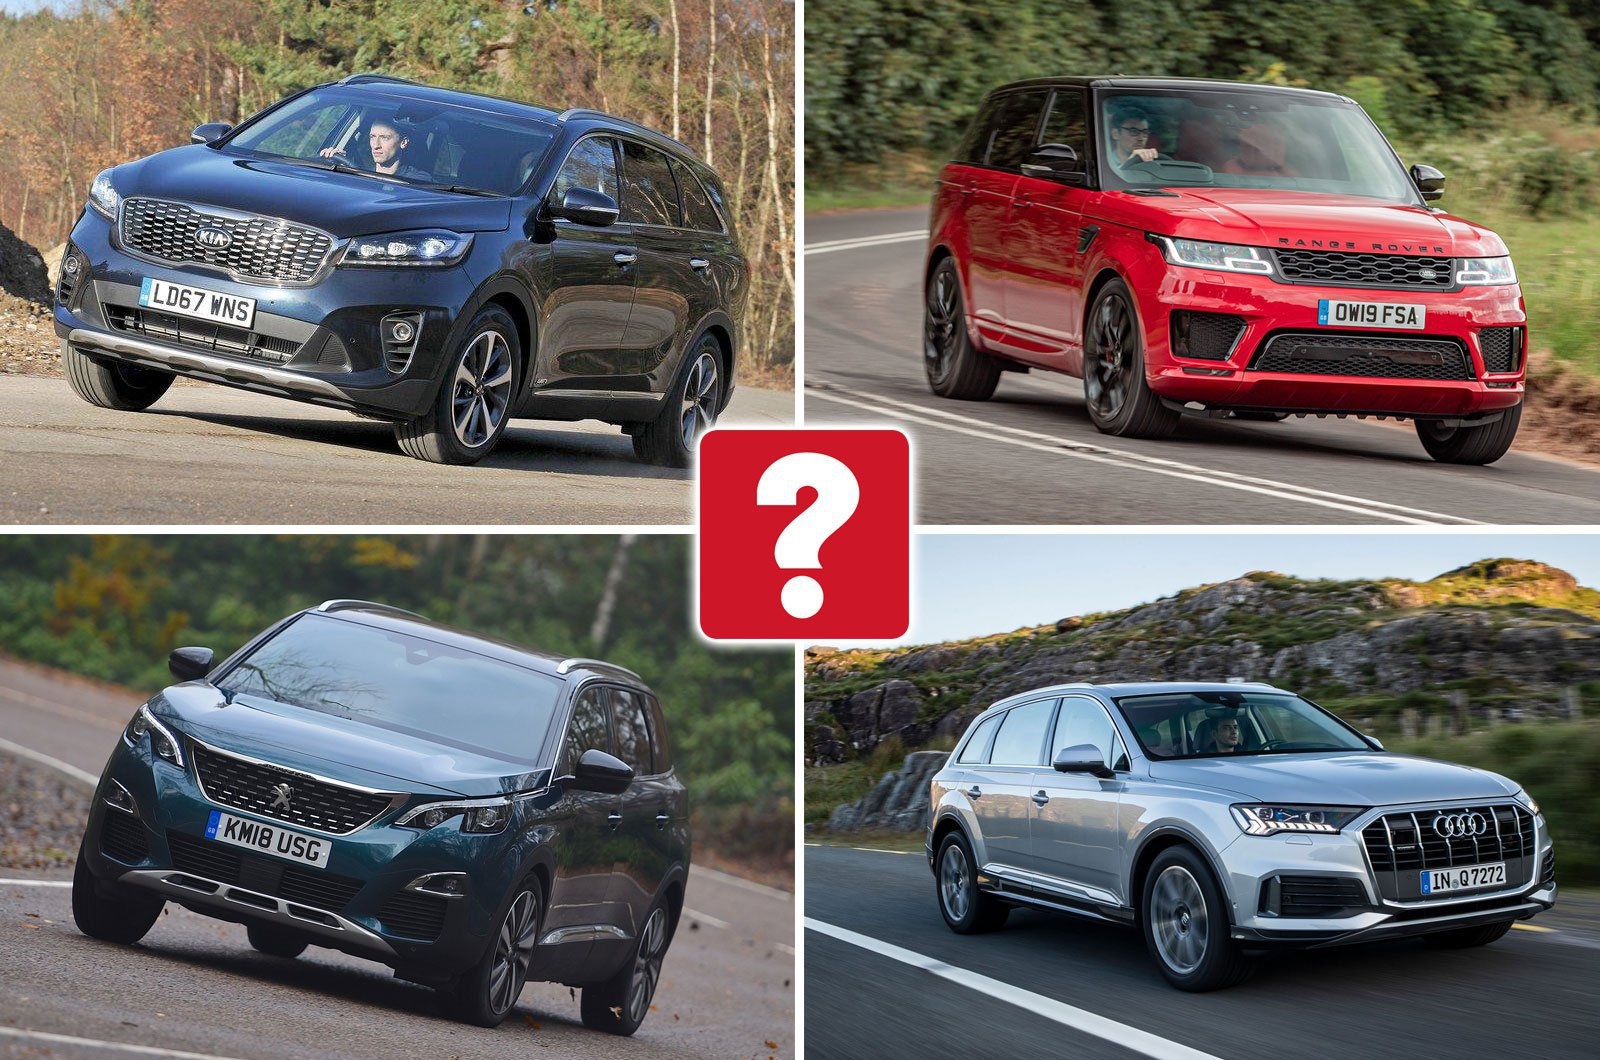 Seven-seater SUV compilation image